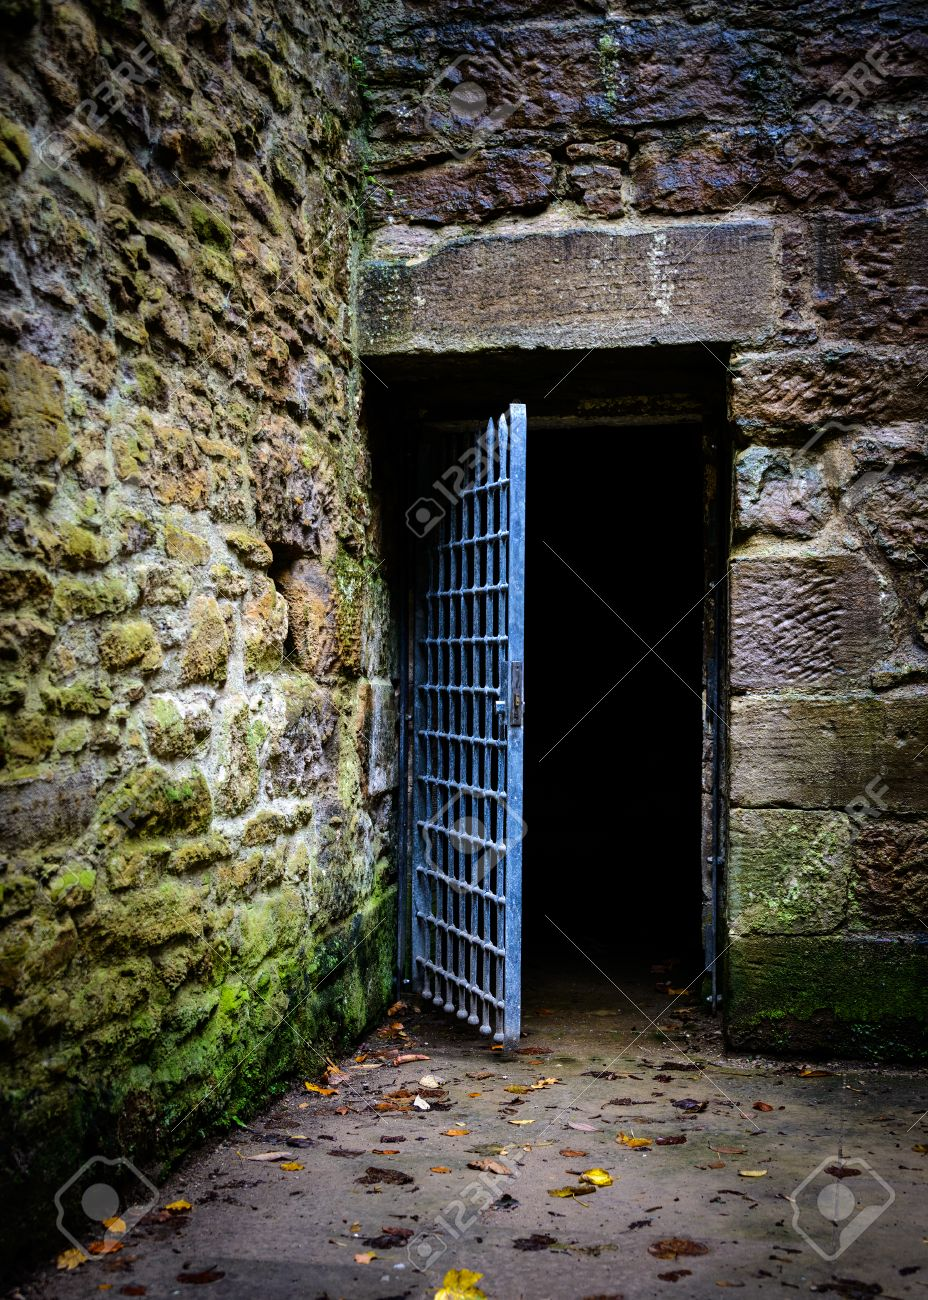 Opened prison door in an old castle Stock Photo - 28916946 & Opened Prison Door In An Old Castle Stock Photo Picture And Royalty ...